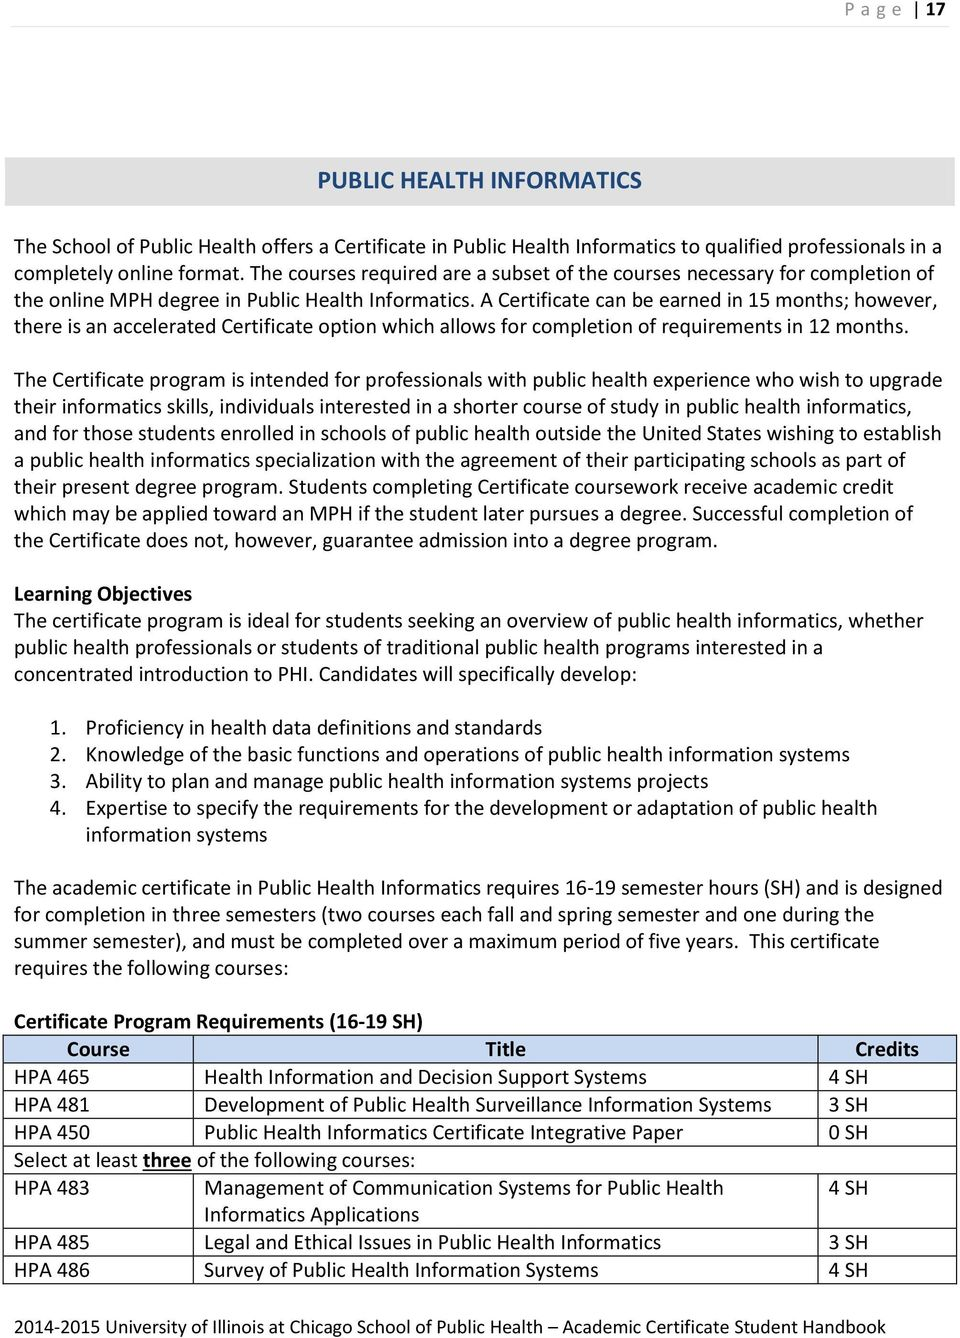 School Of Public Health Pdf